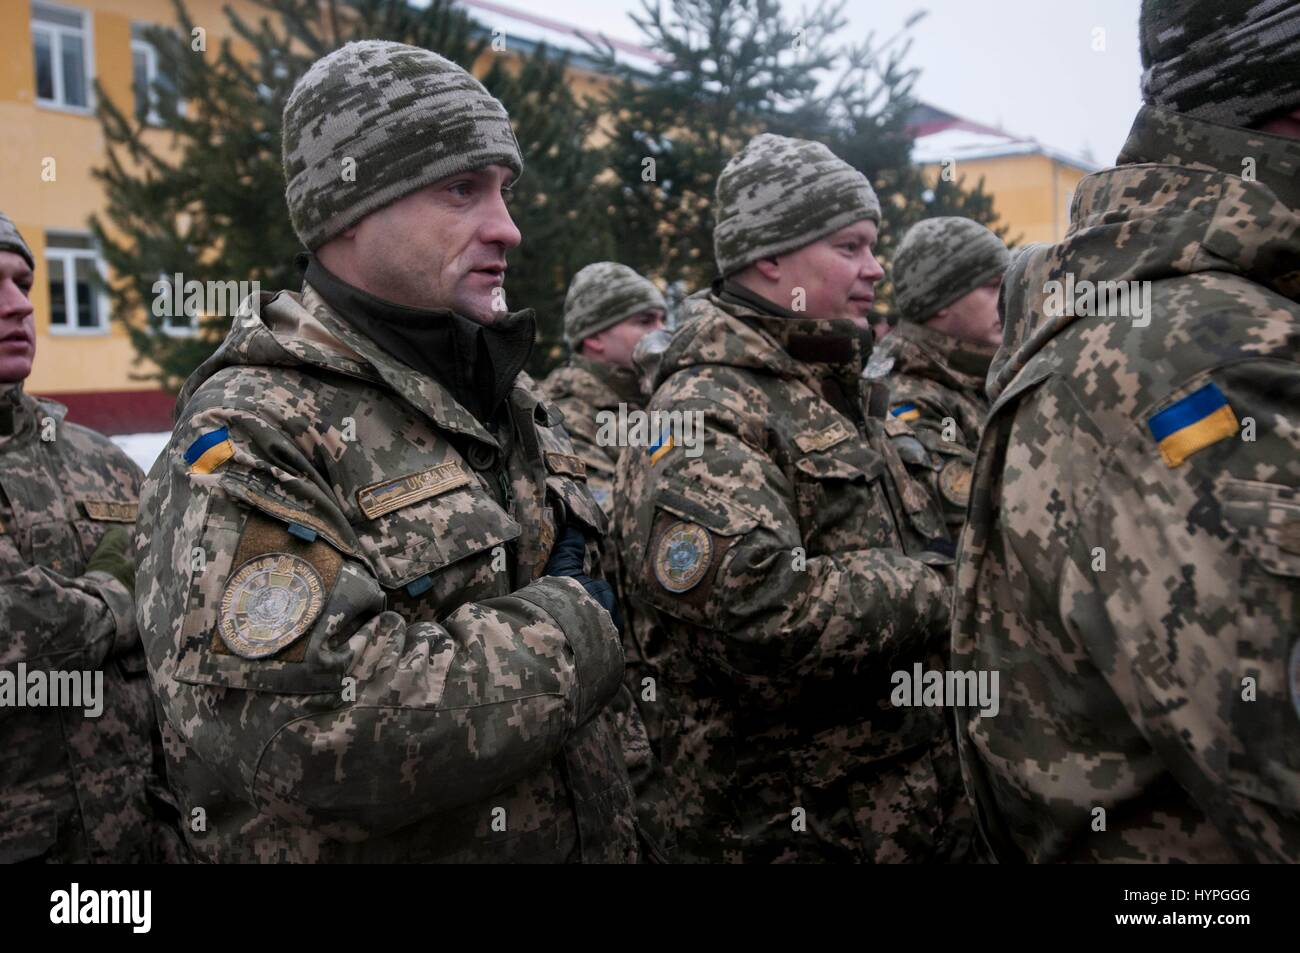 Ukrainian soldiers sing along to the national anthem during an opening ceremony at the International Peacekeeping - Stock Image